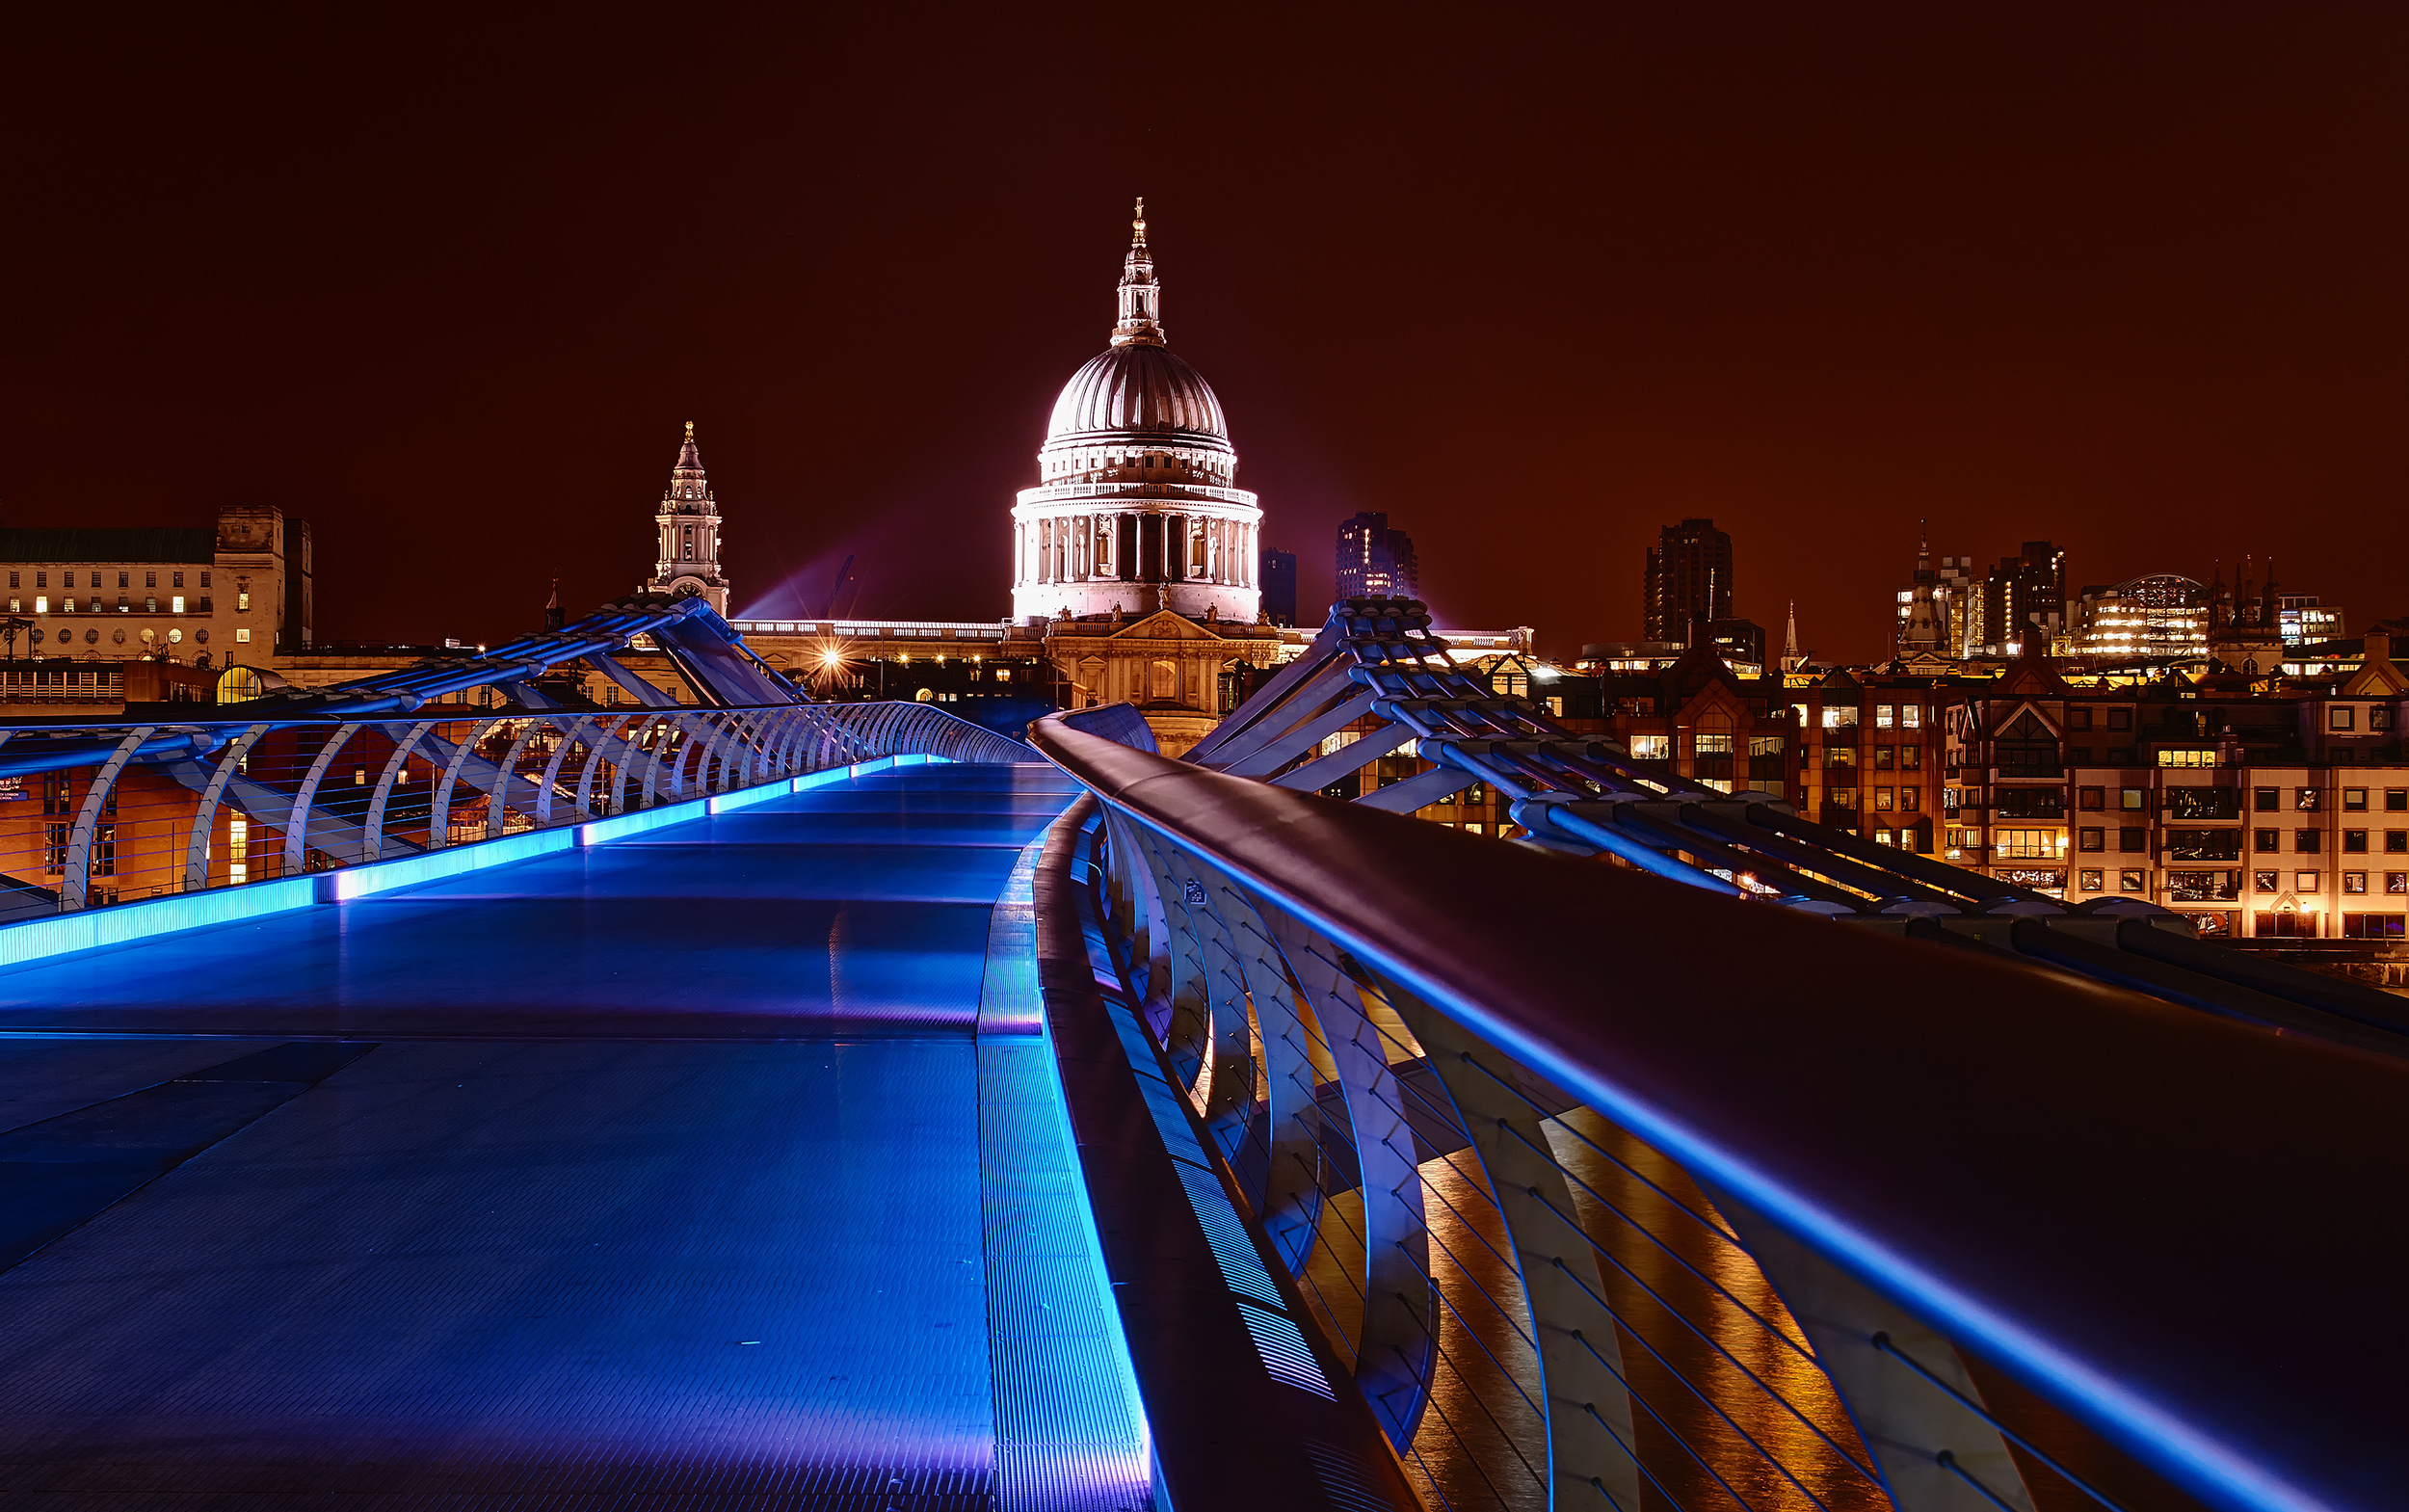 Millenium Bridge in London